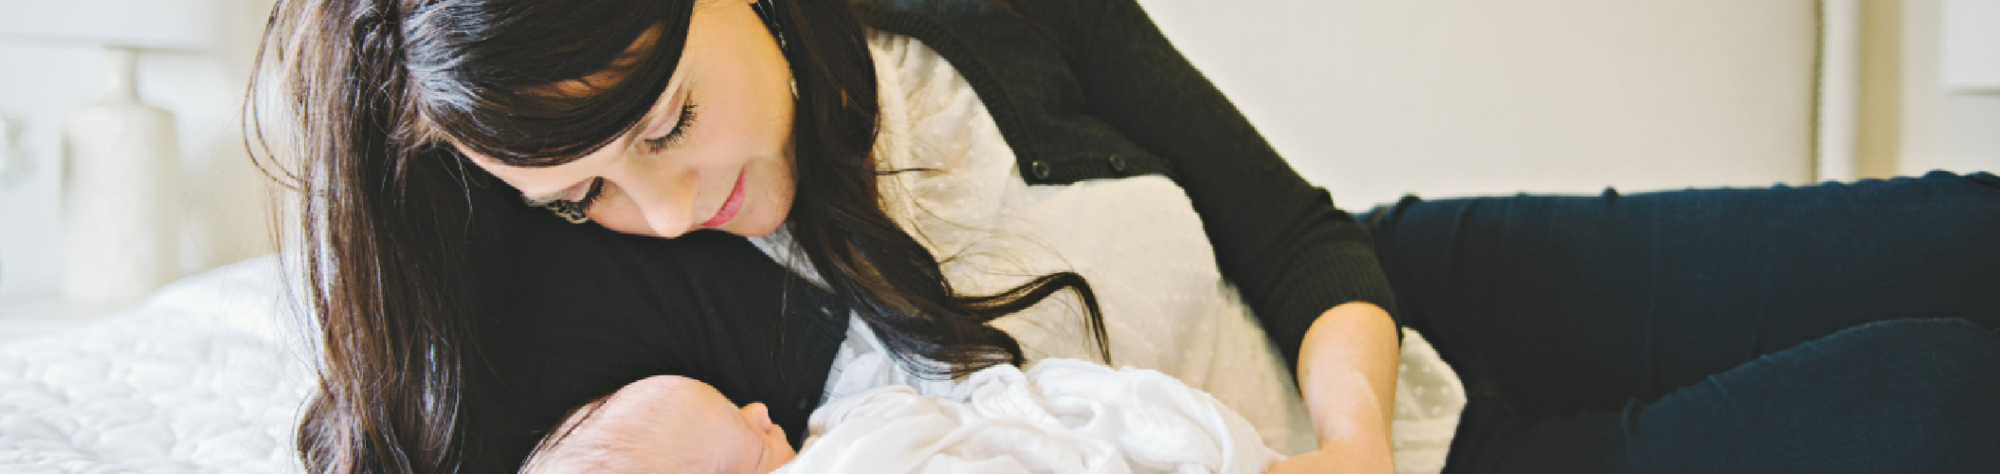 Stand With Moms: A Heartbreaking Story Of The Effects Of Postpartum Depression